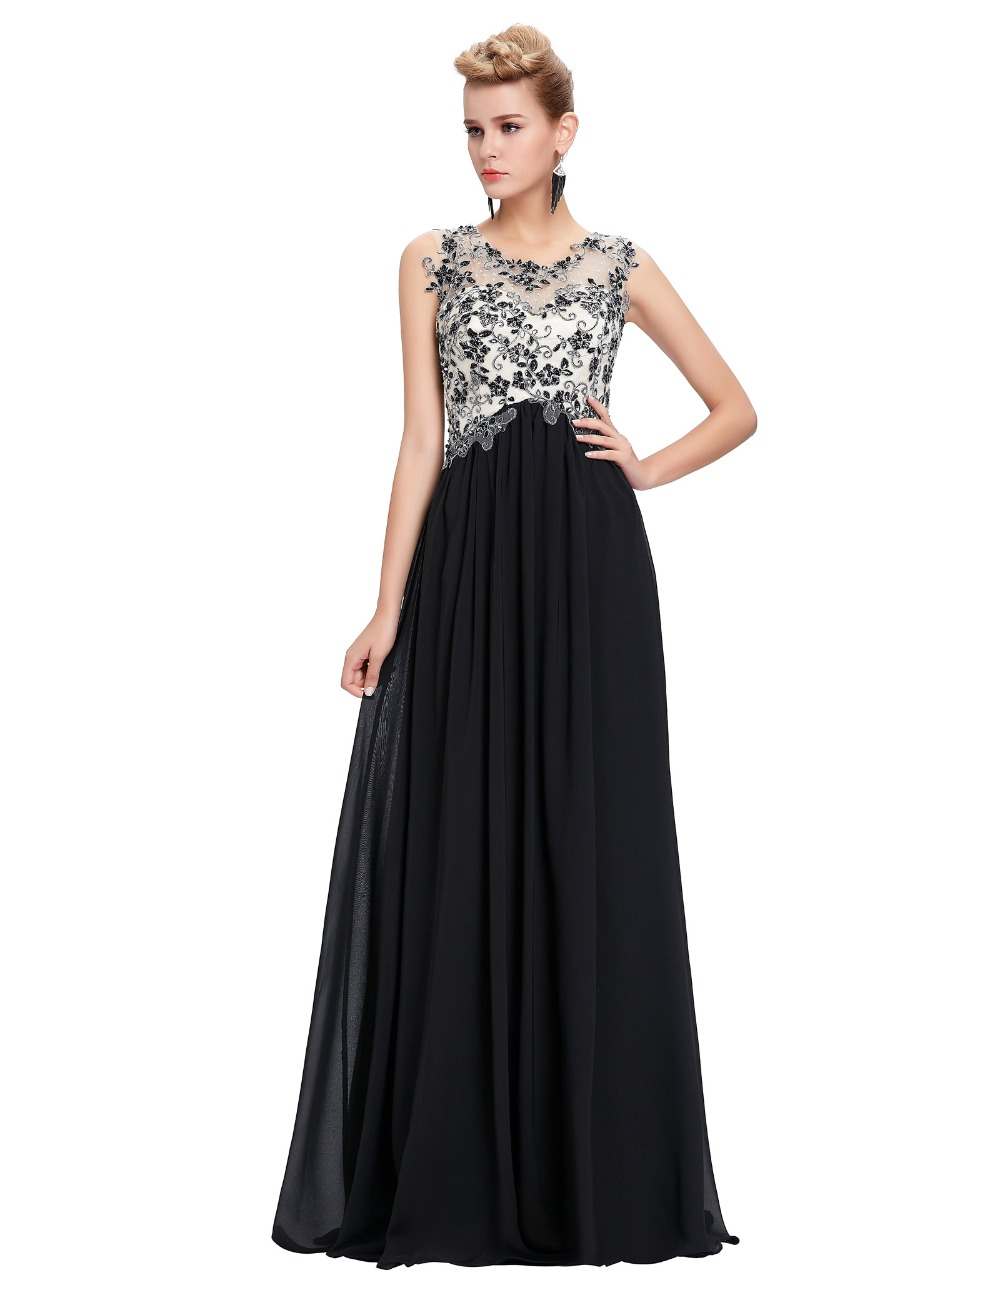 Floor Length Elegant Formal Evening Dresses For Women 2016 White Black